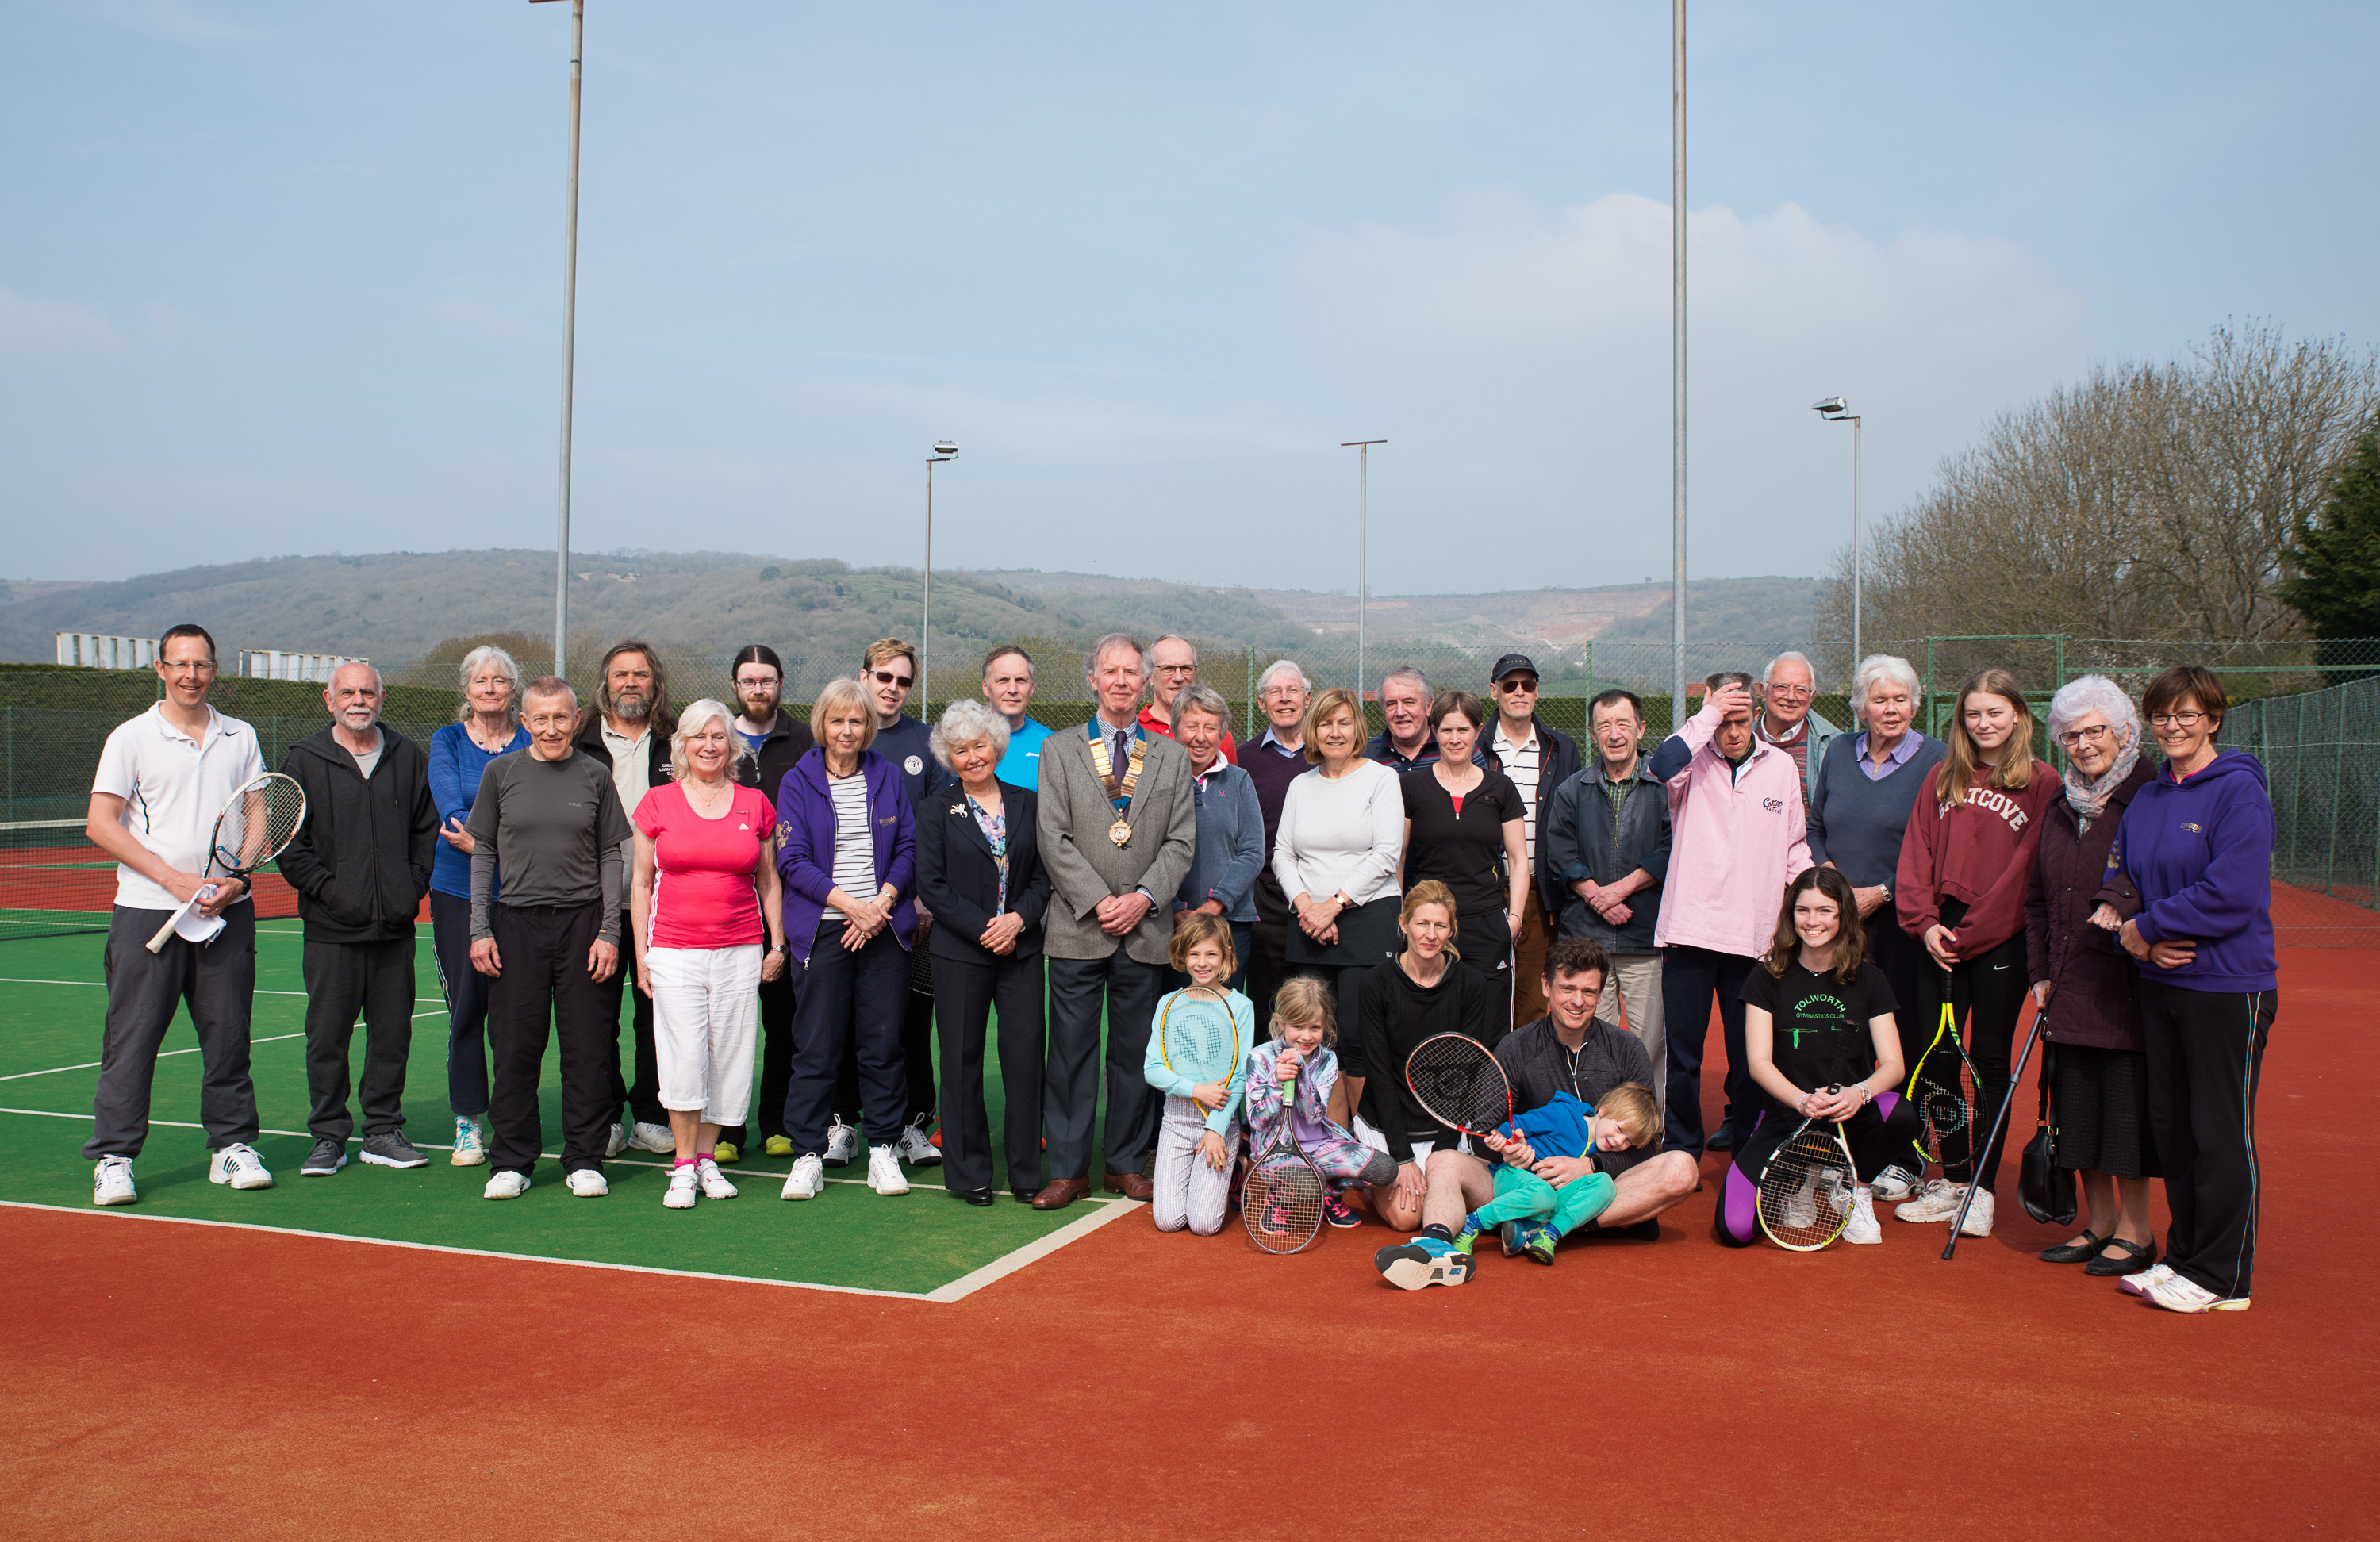 OFFICIAL OPENING OF CHEDDAR TENNIS CLUB'S NEW COURTS